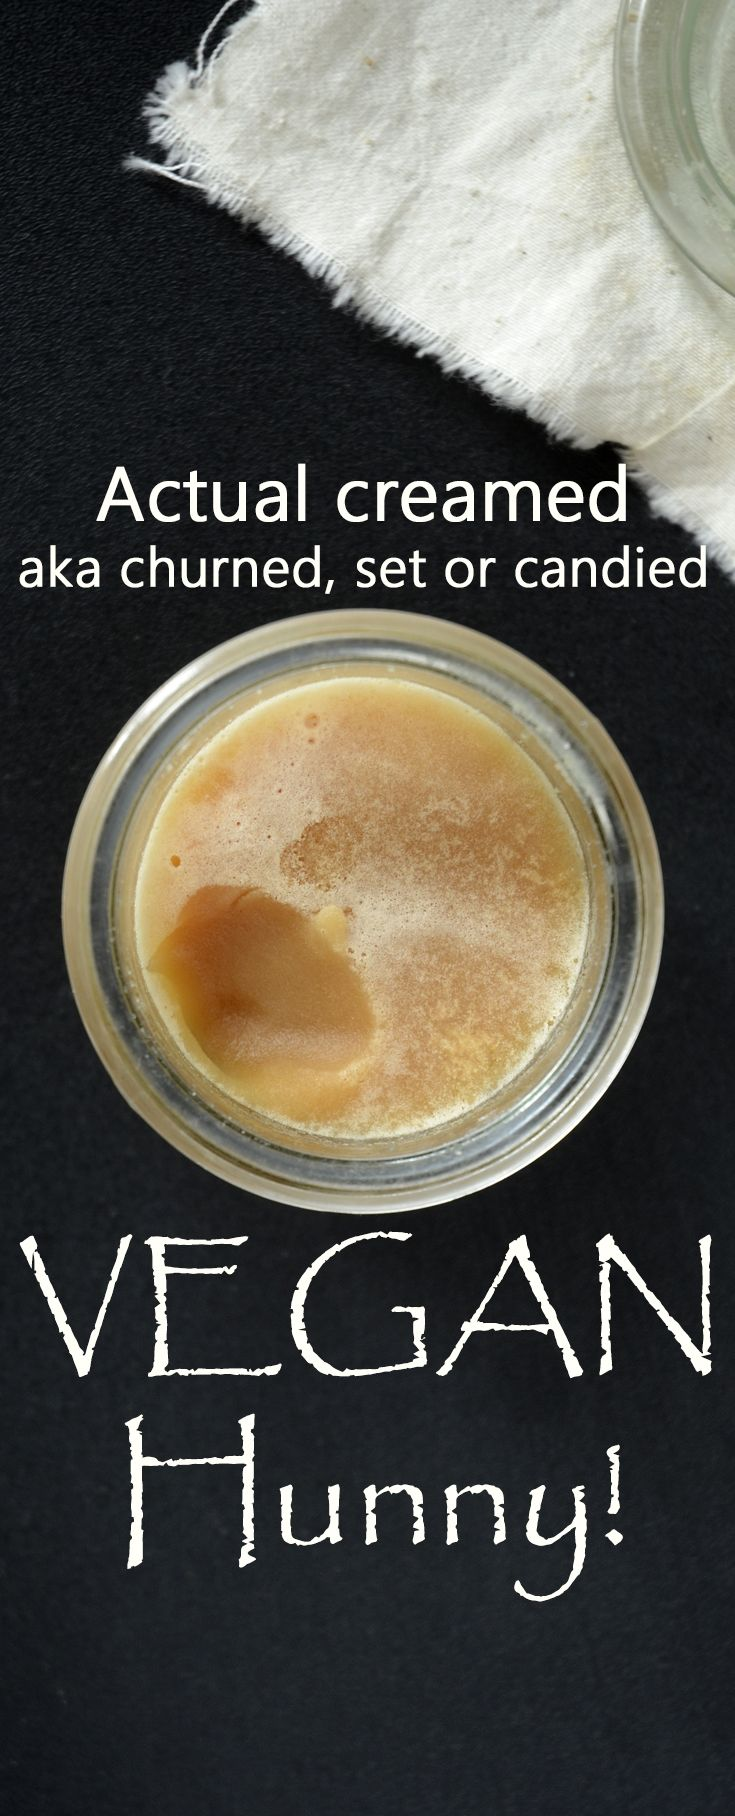 Actual creamed, set, spun, churned or candied vegan 'honey'